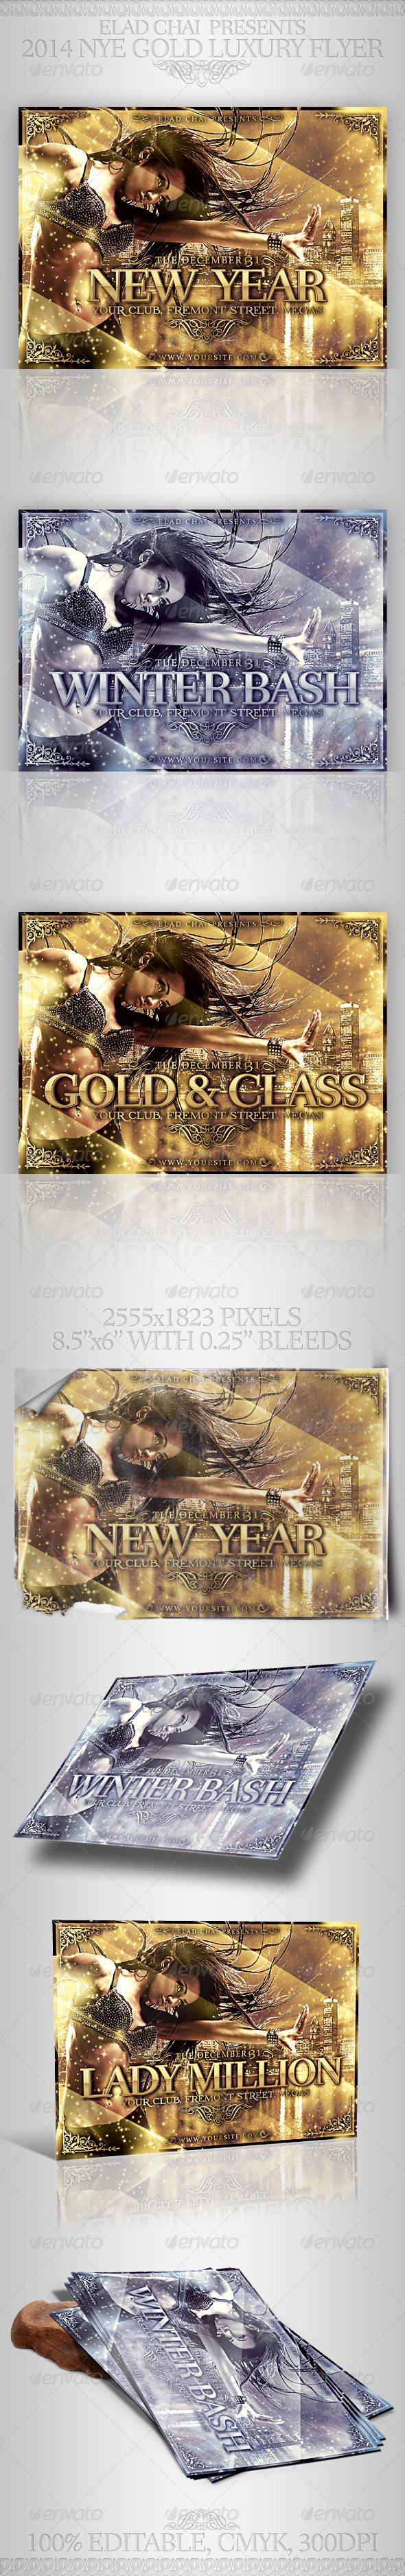 2014 NYE Gold Luxury Winter Flyer - Events Flyers